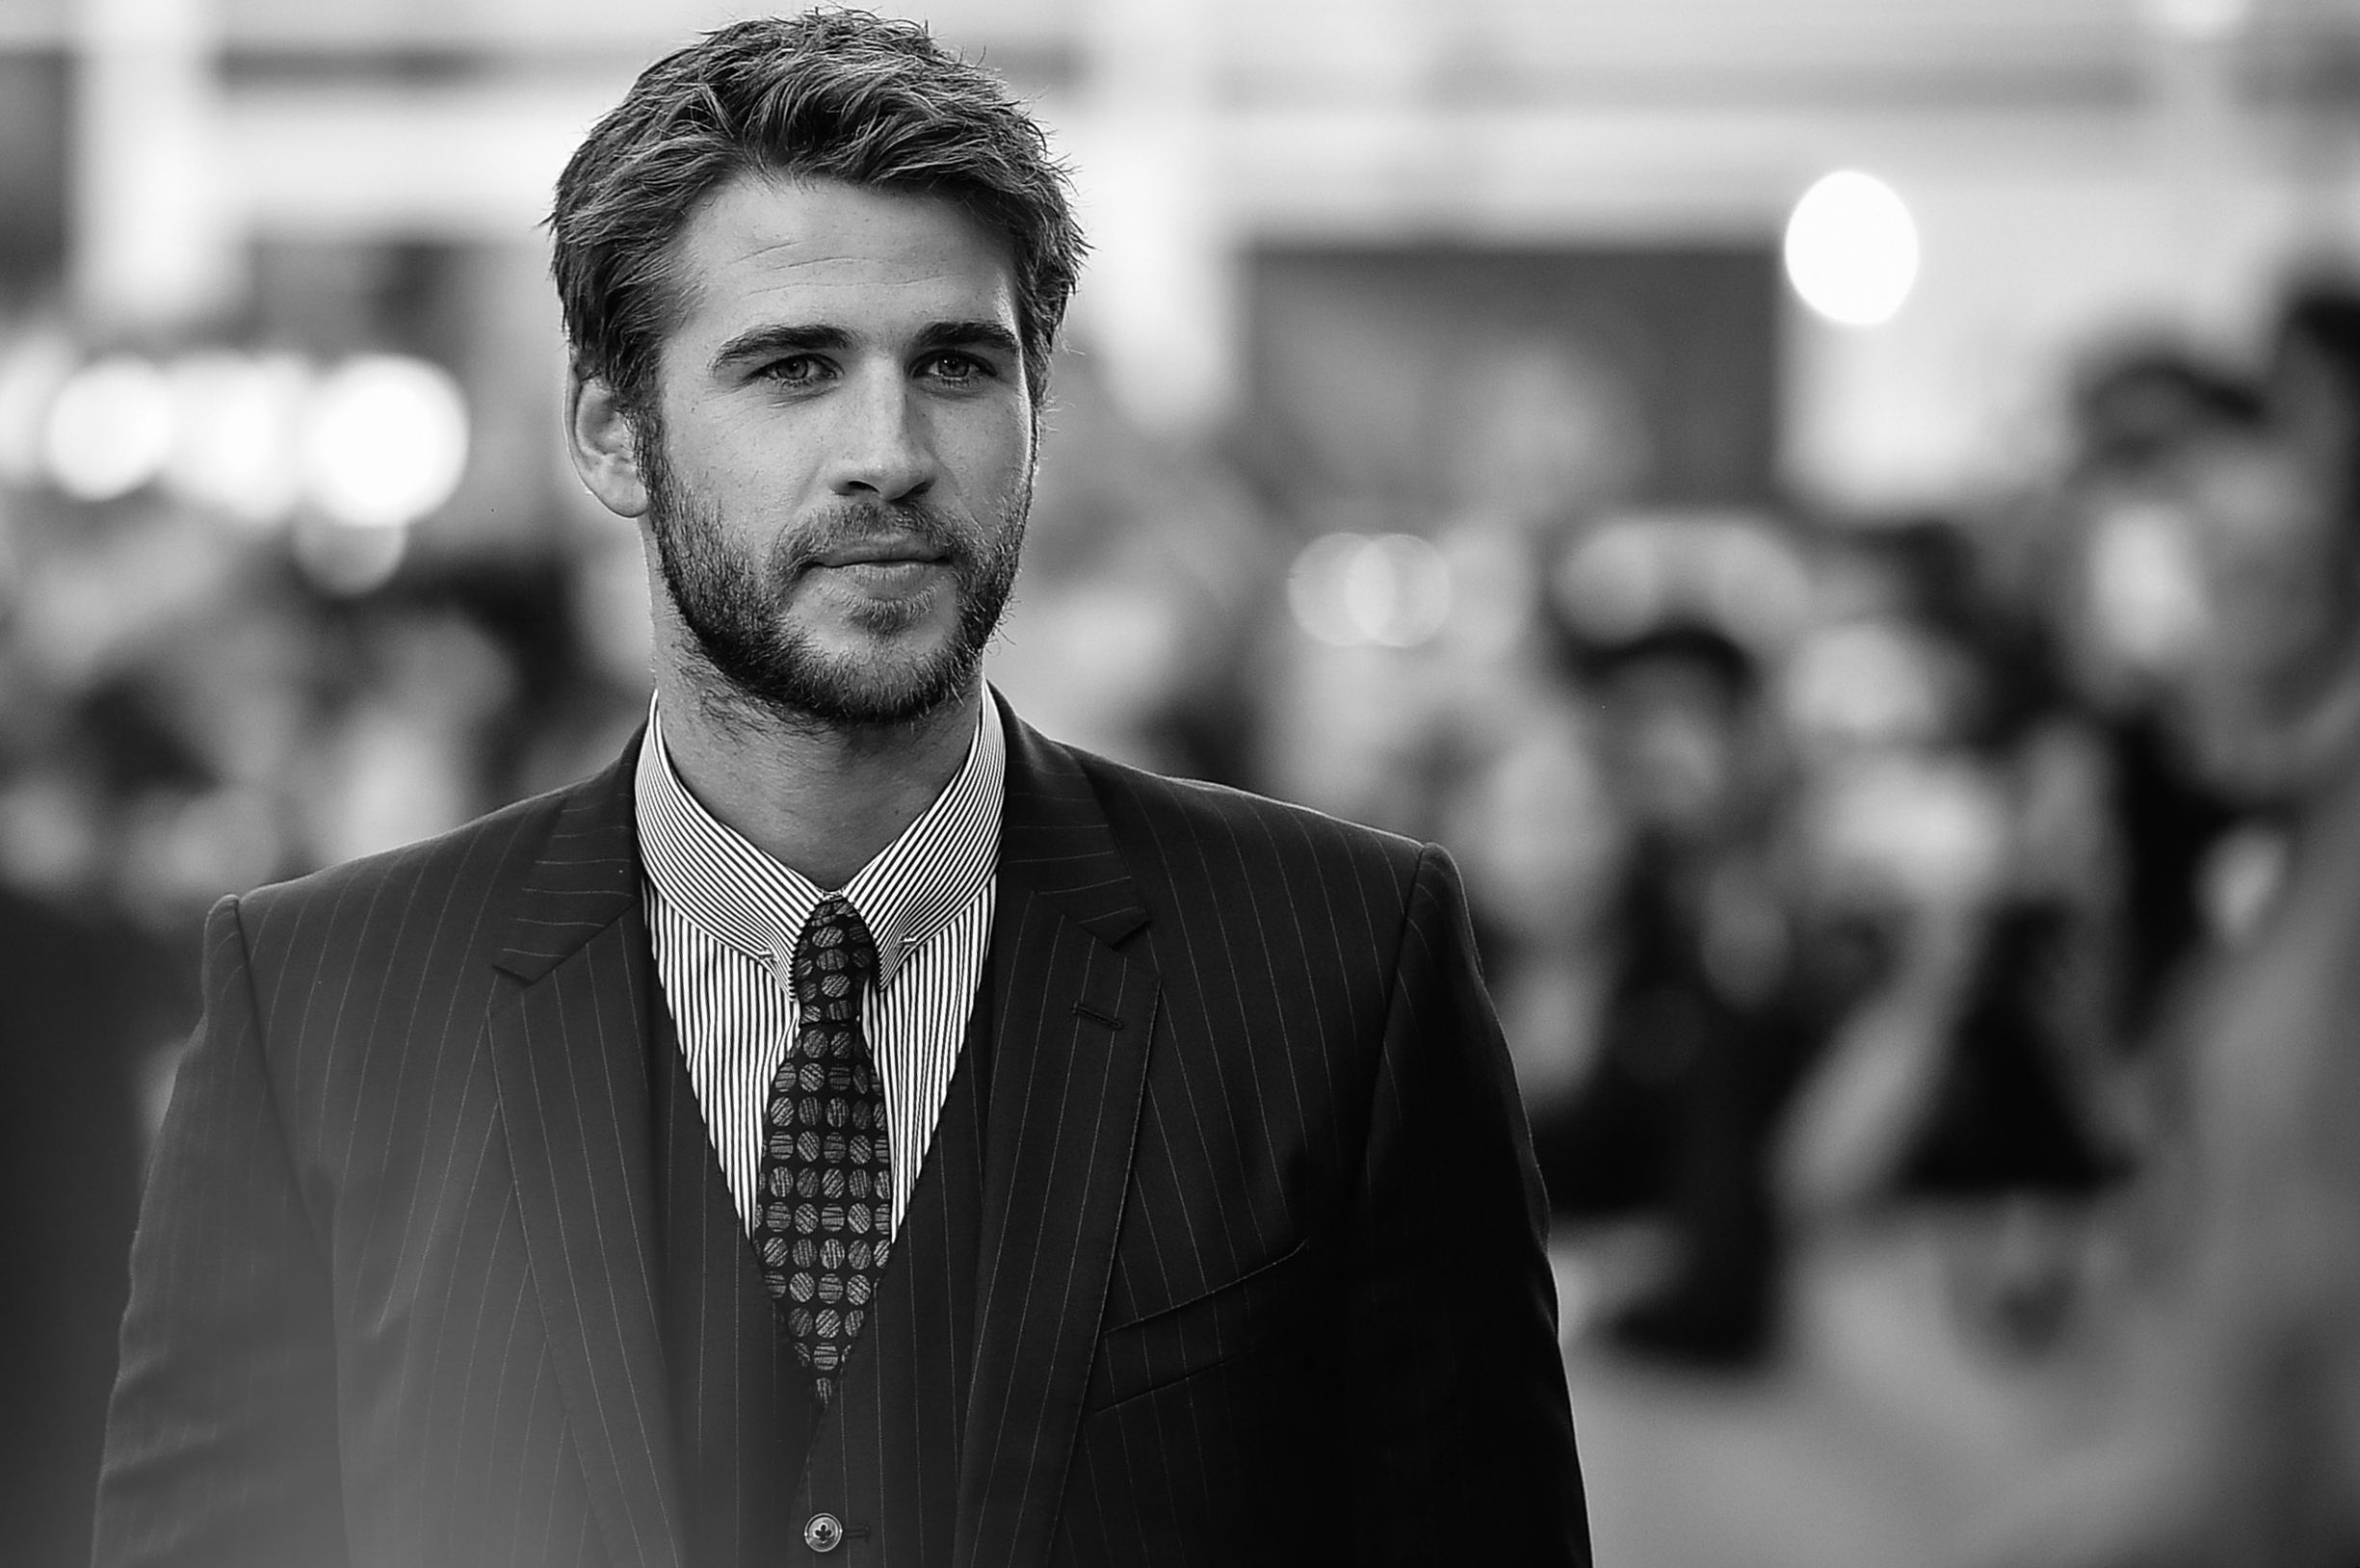 Liam Hemsworth Makes His Emotional First Comment on His and Miley Cyrus' Breakup